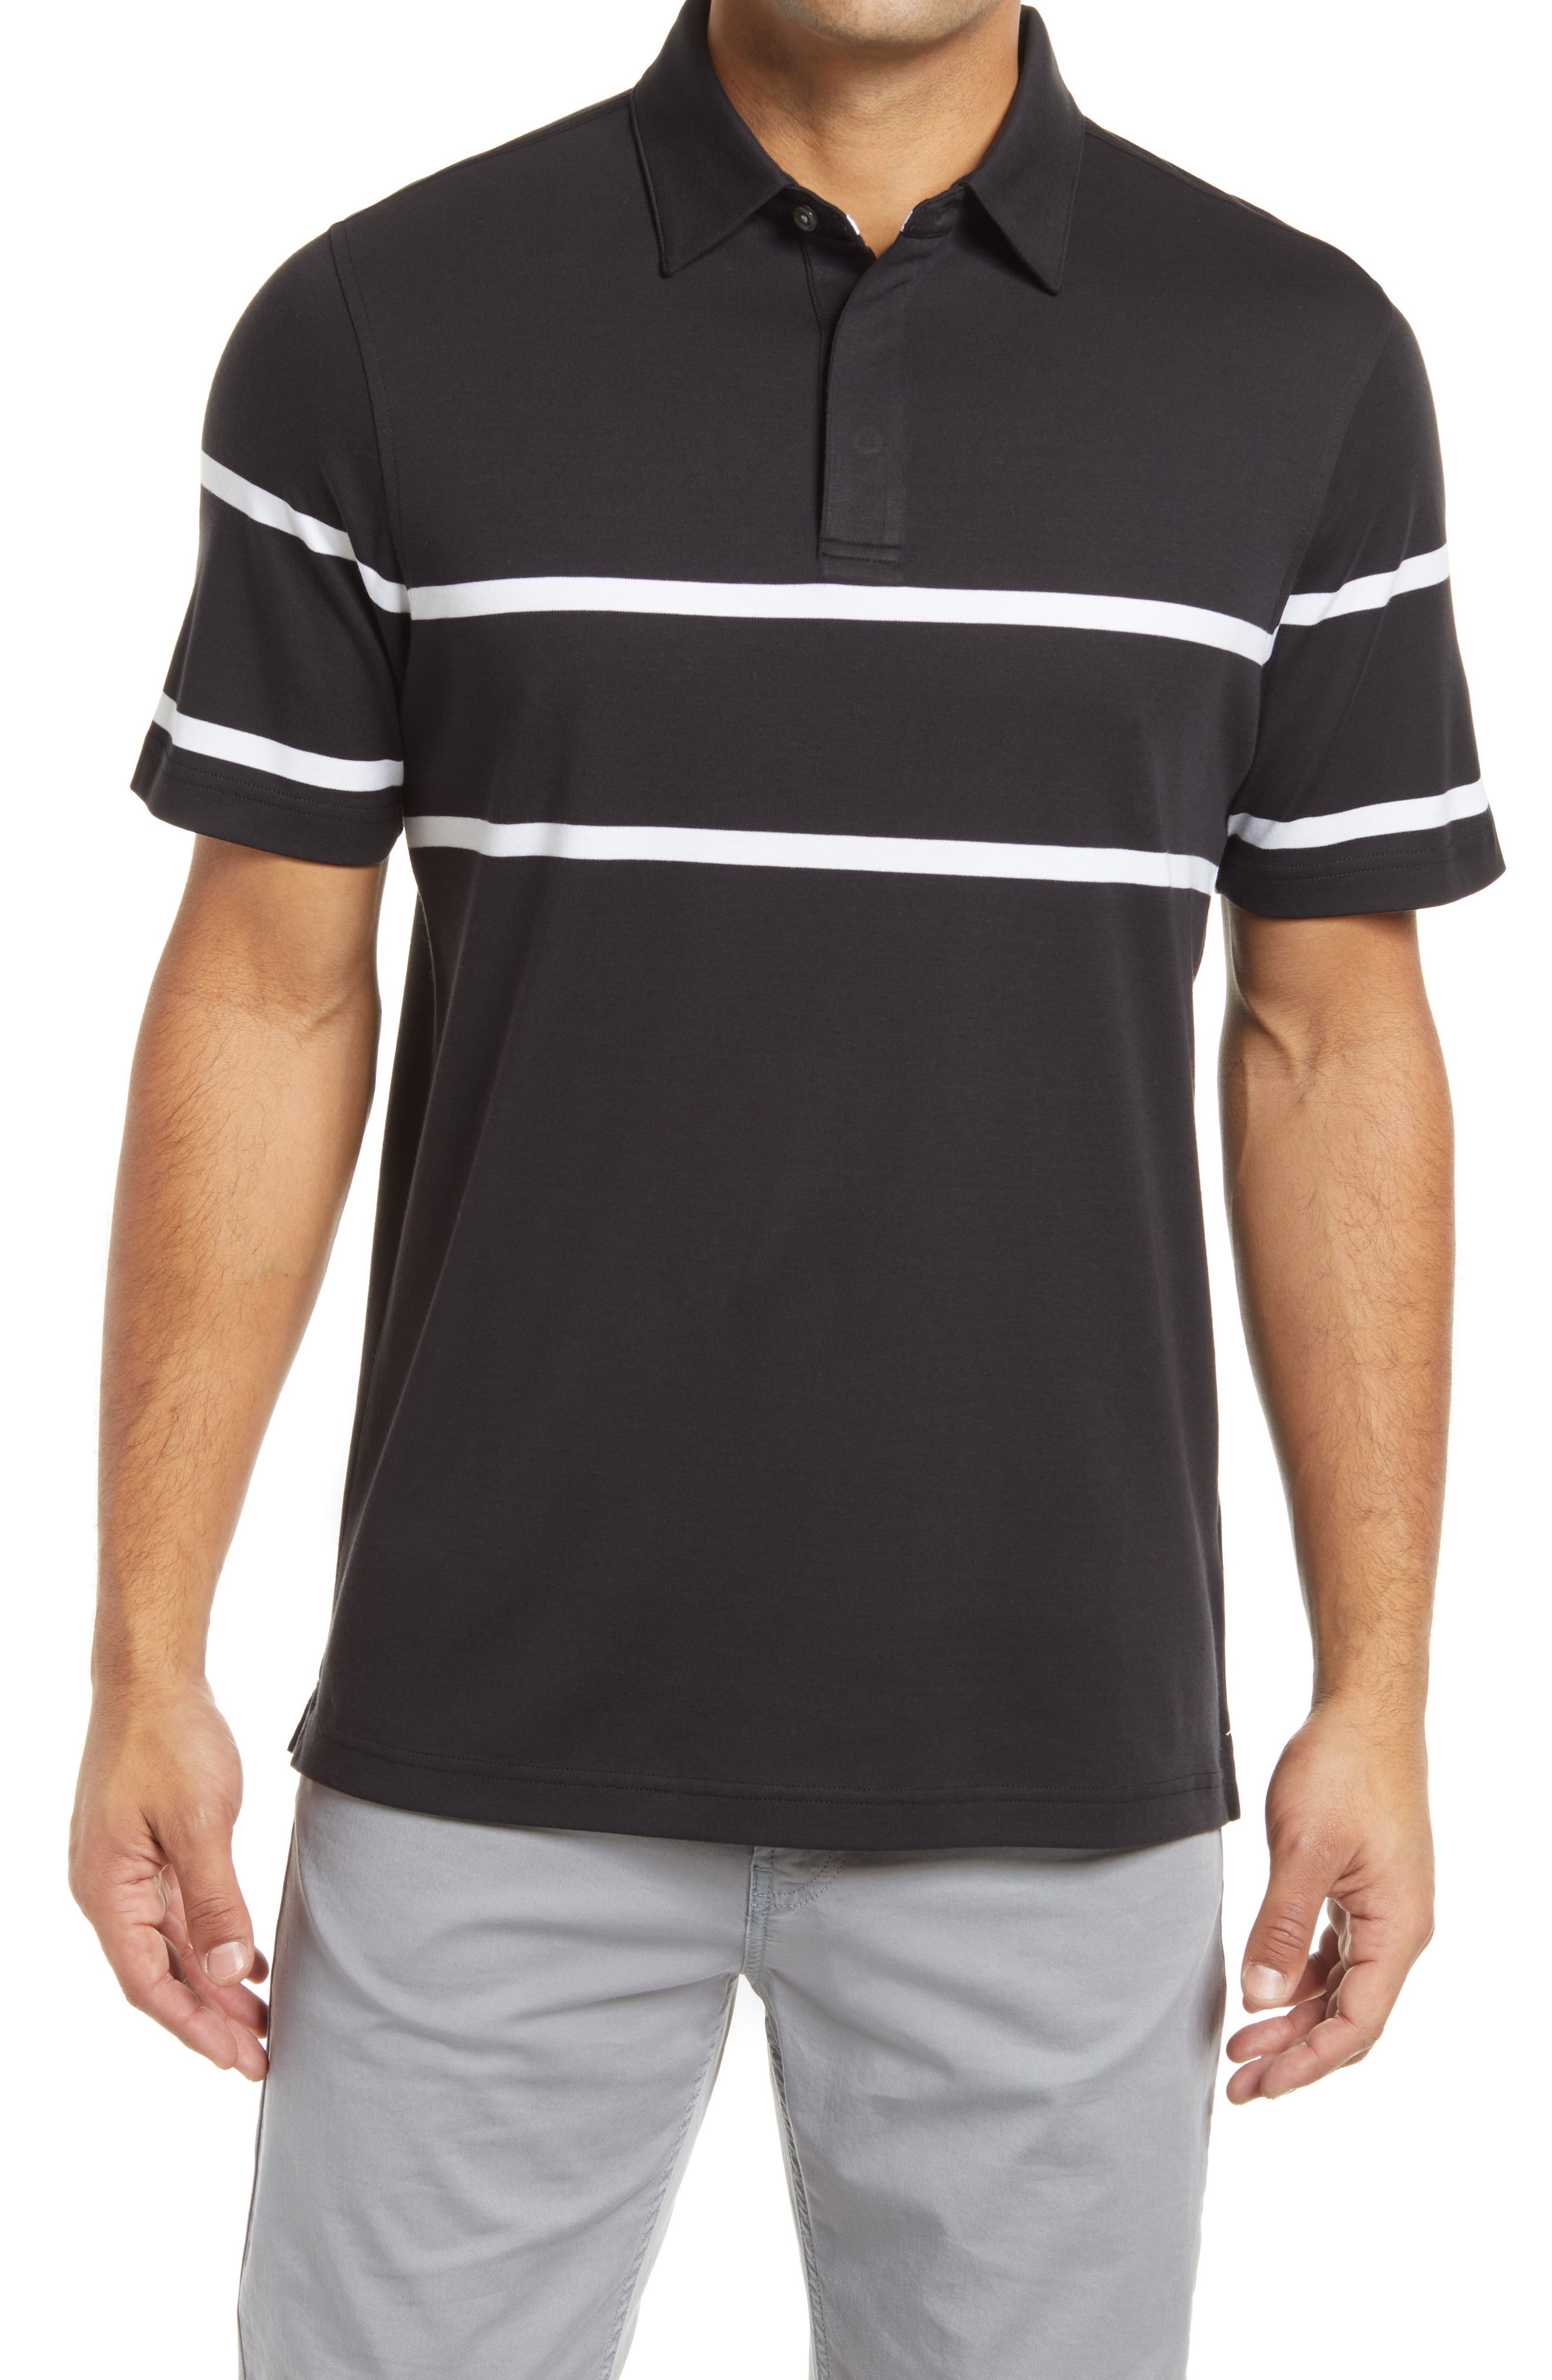 Clean-cut stripes touch up a modern polo shirt cut from soft pima cotton. Style Name: Bugatchi Stripe Pima Cotton Polo Shirt. Style Number: 6129557. Available in stores.